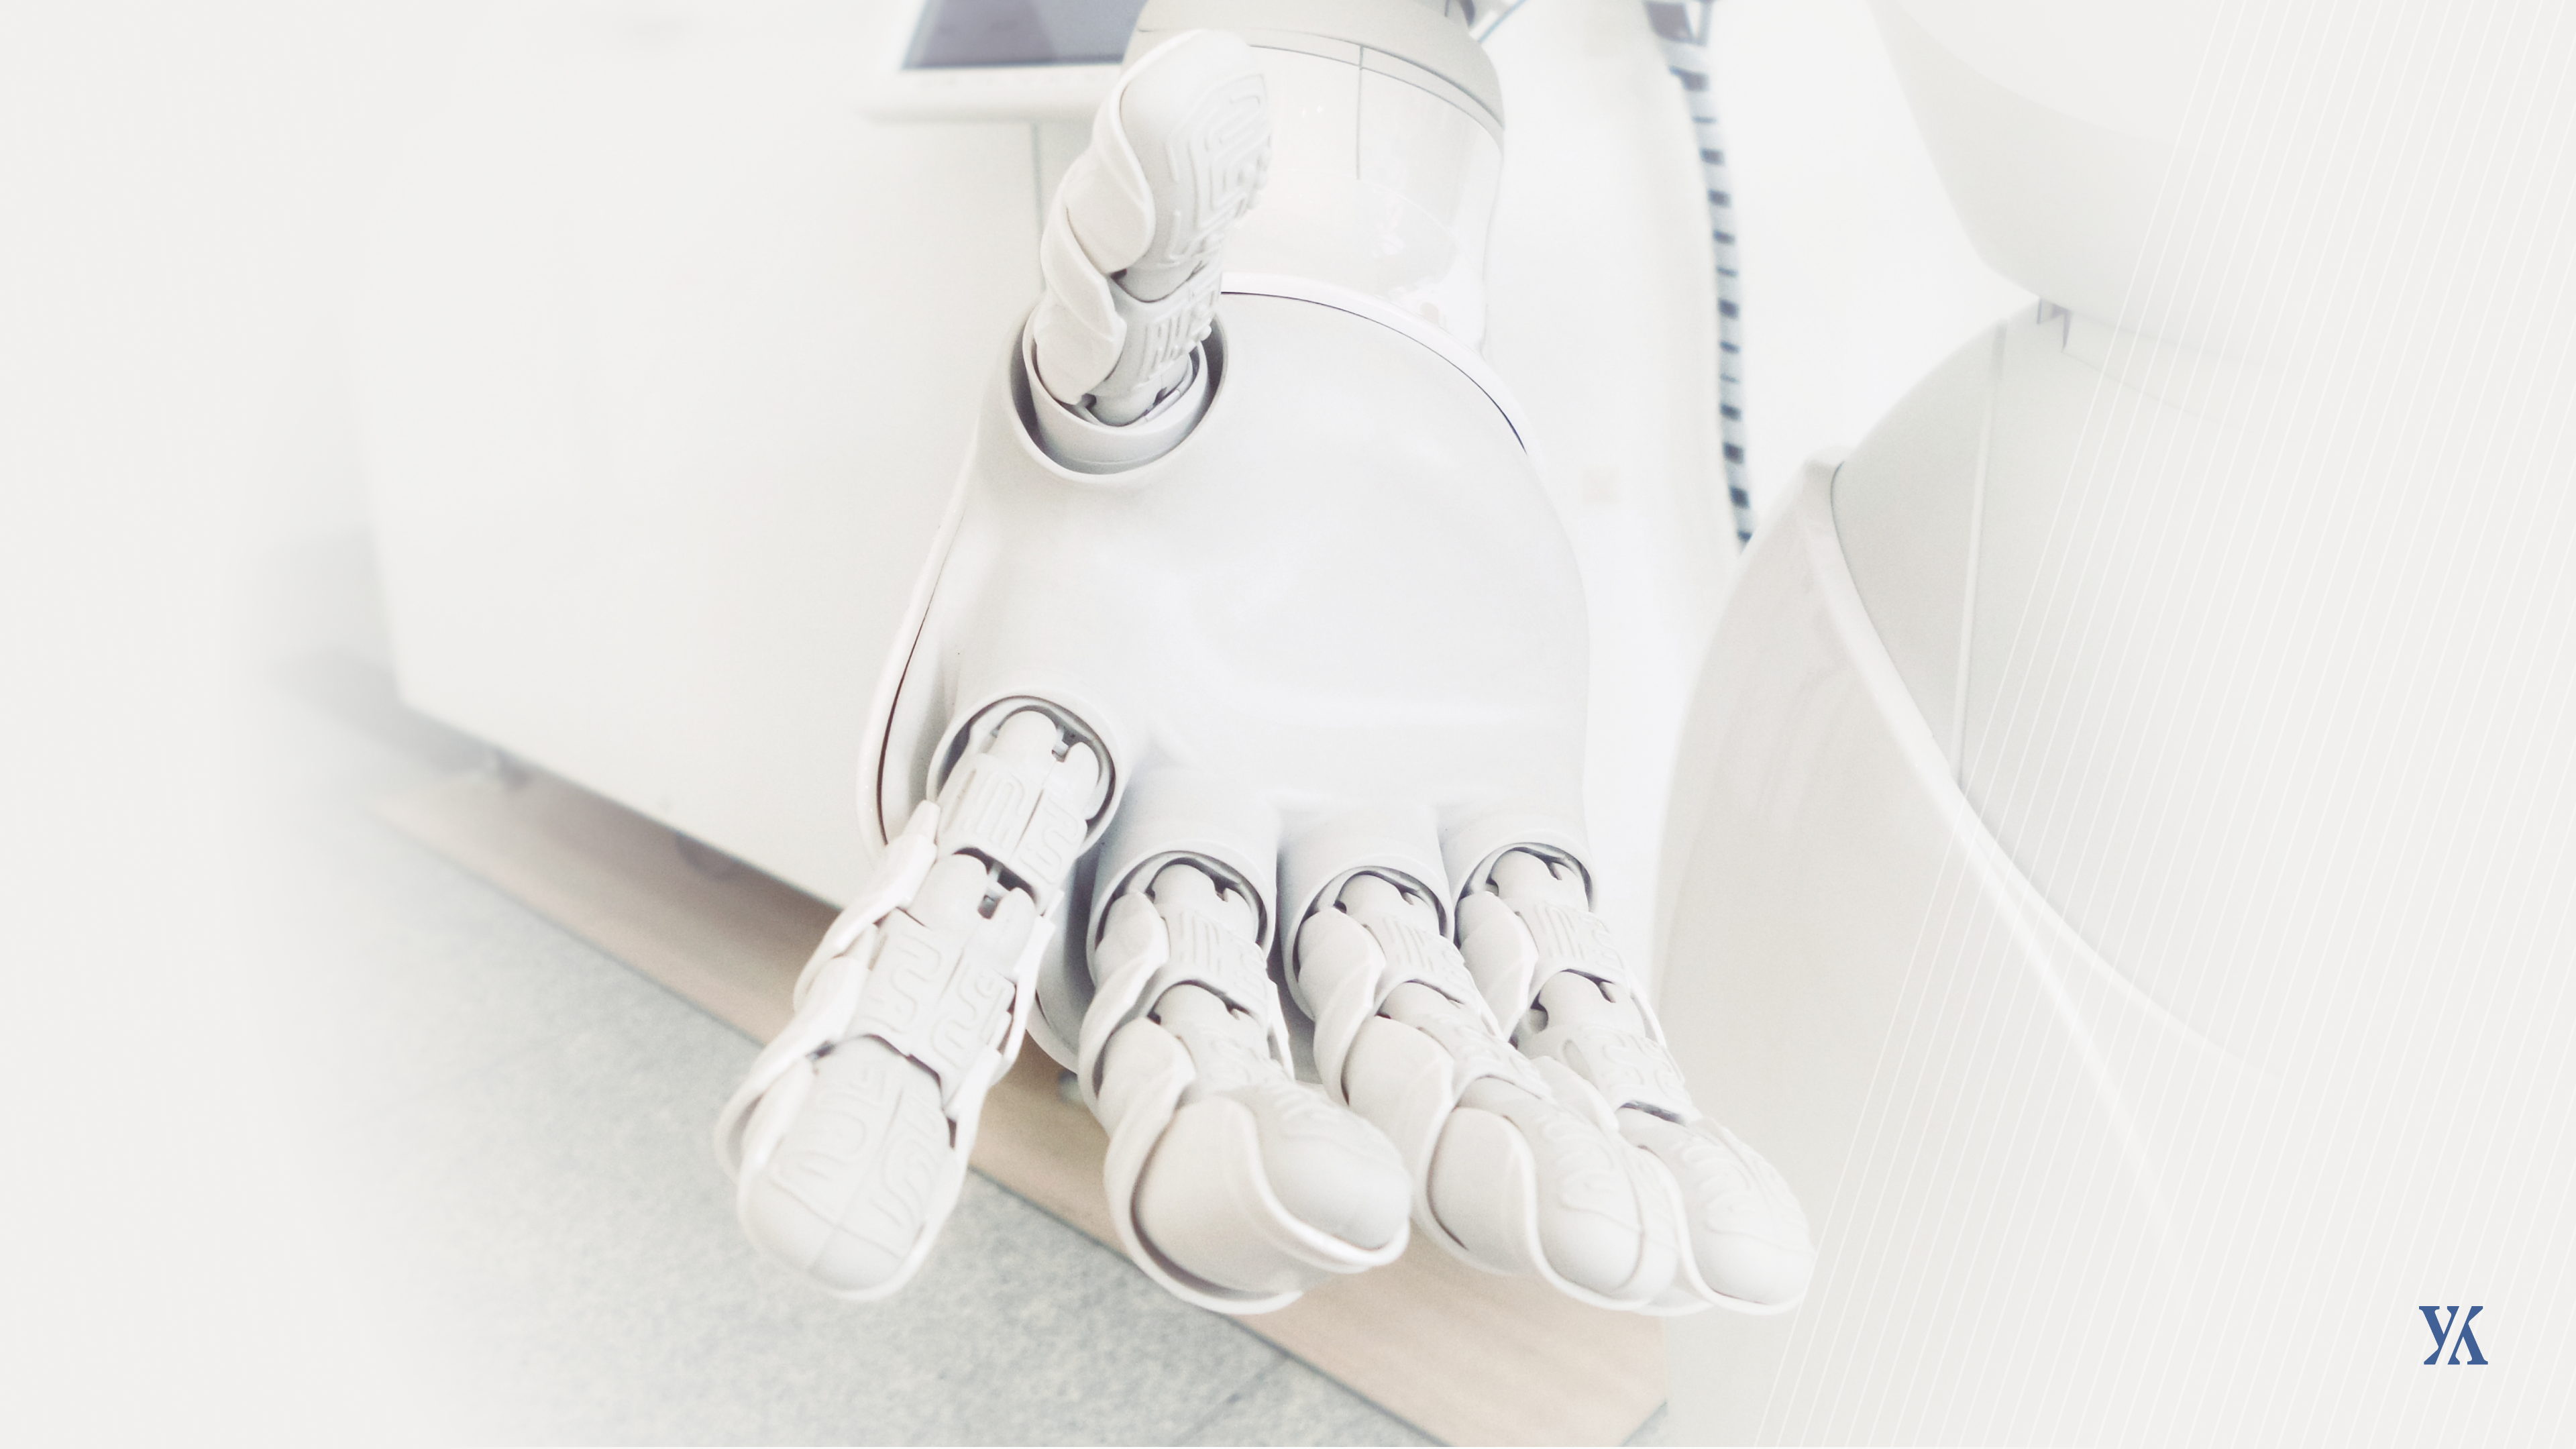 A banner of an AI robot reaching out to help